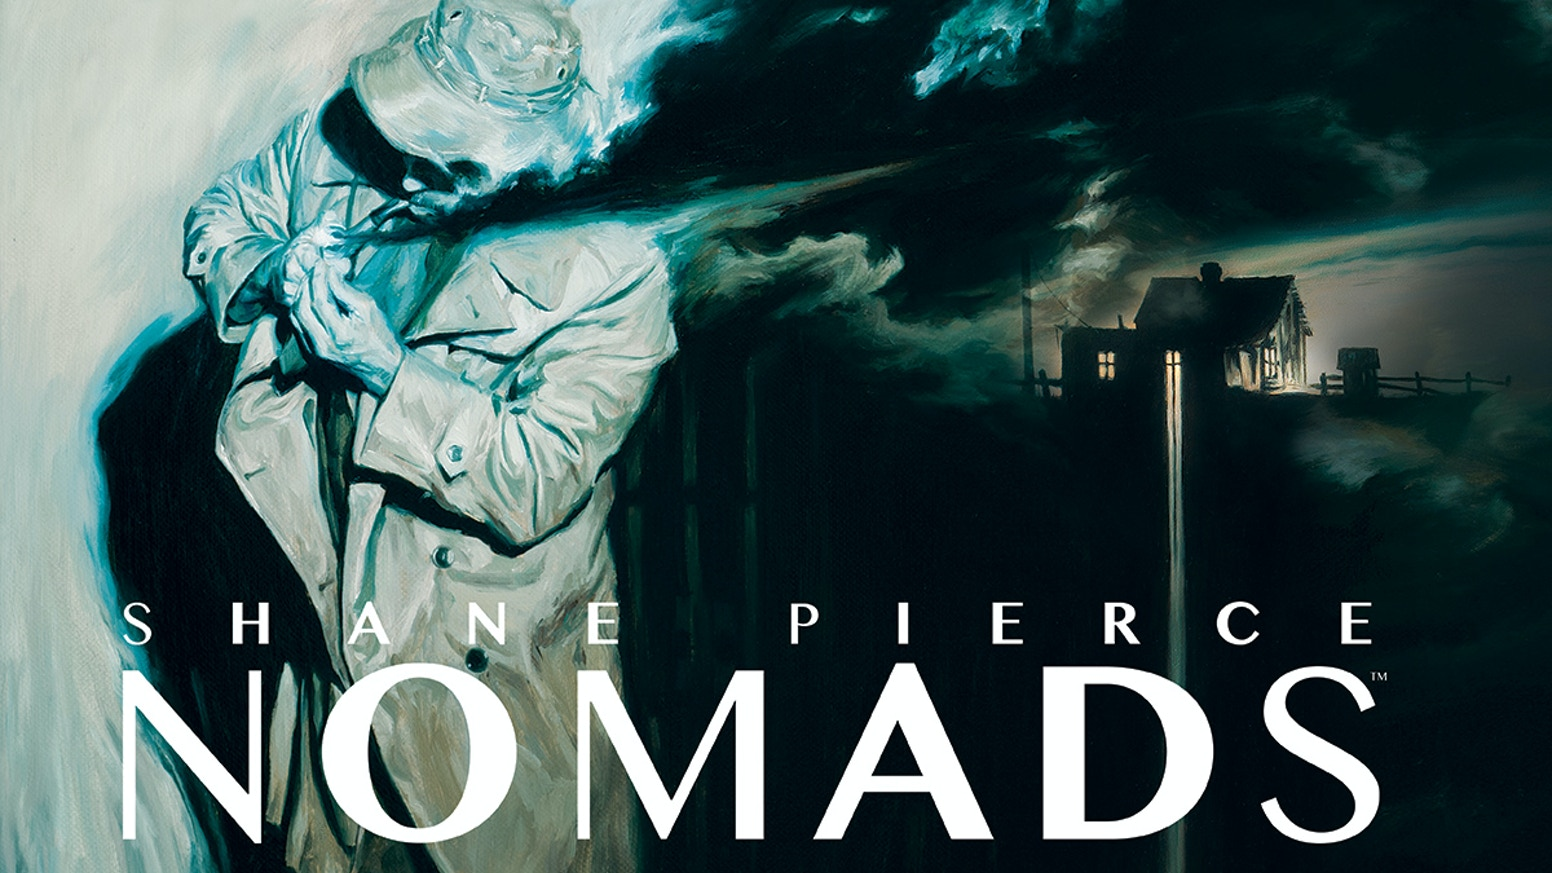 NOMADS, an art book that explores rambling dark figures in modern compositions mixed with contemporary noir.